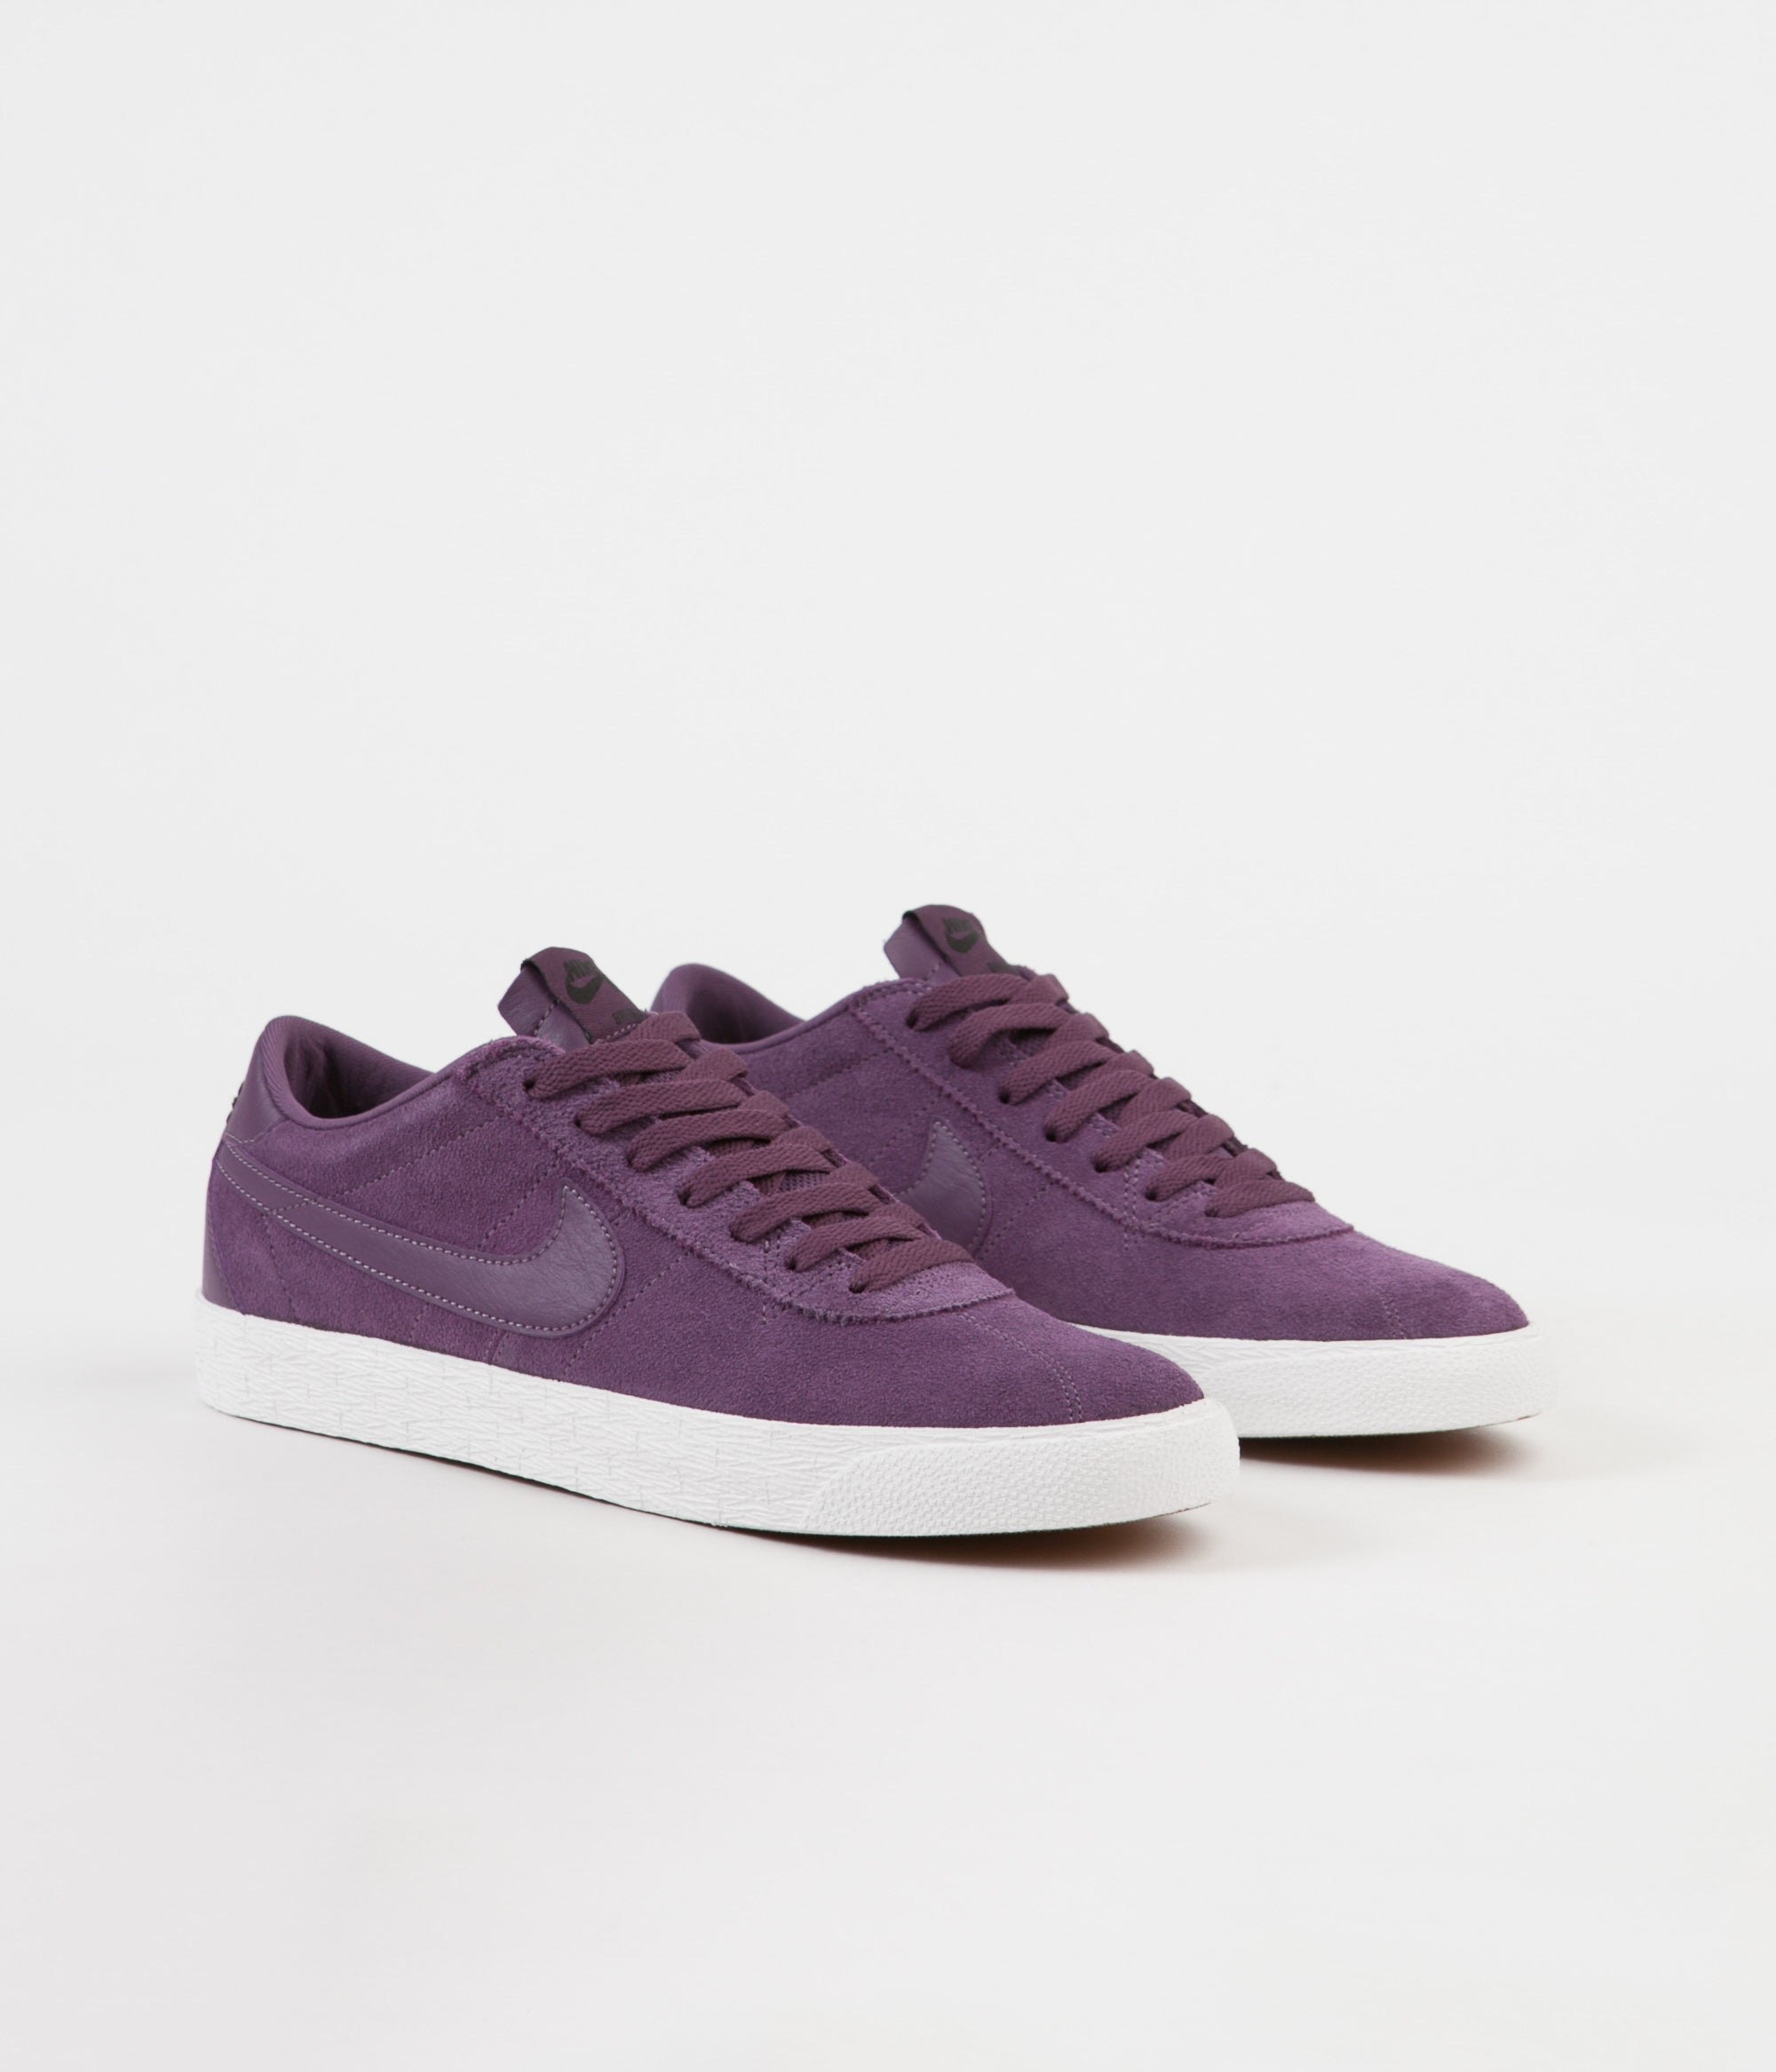 af606c80fb510 ... Nike SB Bruin Premium SE Shoes - Pro Purple   Pro Purple - Summit White  ...